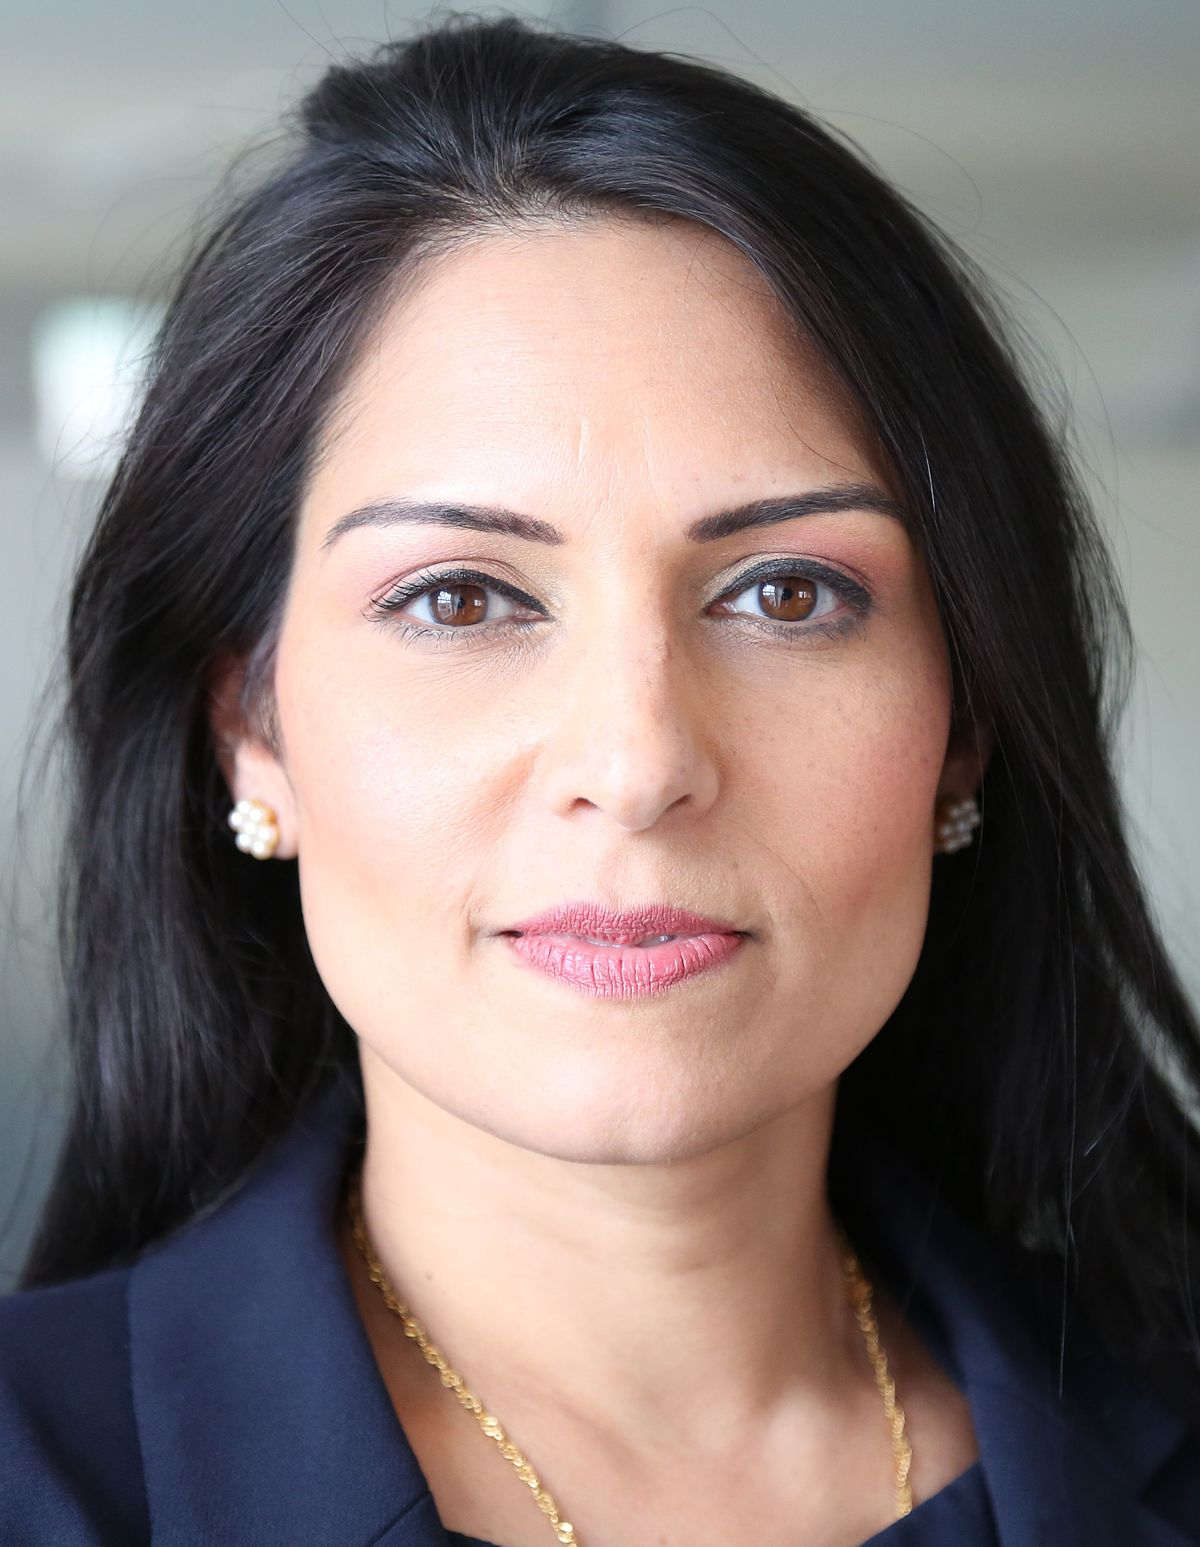 Secretary of State for International Development of UK Priti Patel.